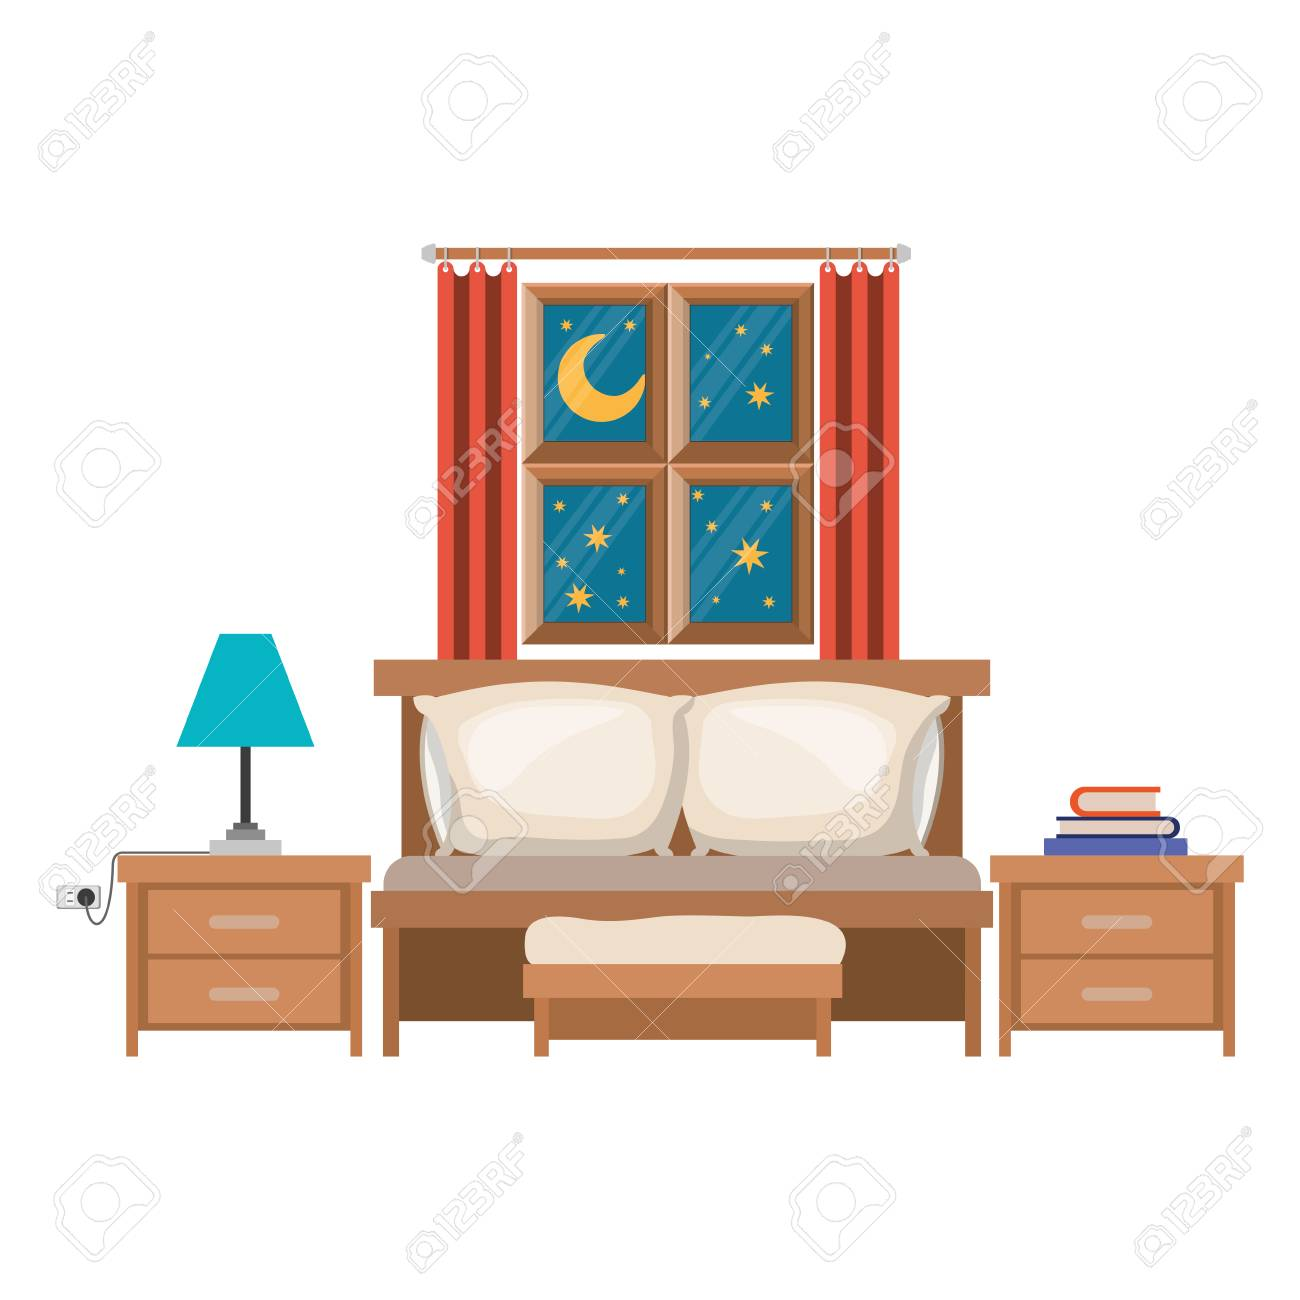 Bedroom With Sofa Bed Window In The Night Landscape In Colorful Silhouette  On White Background Vector